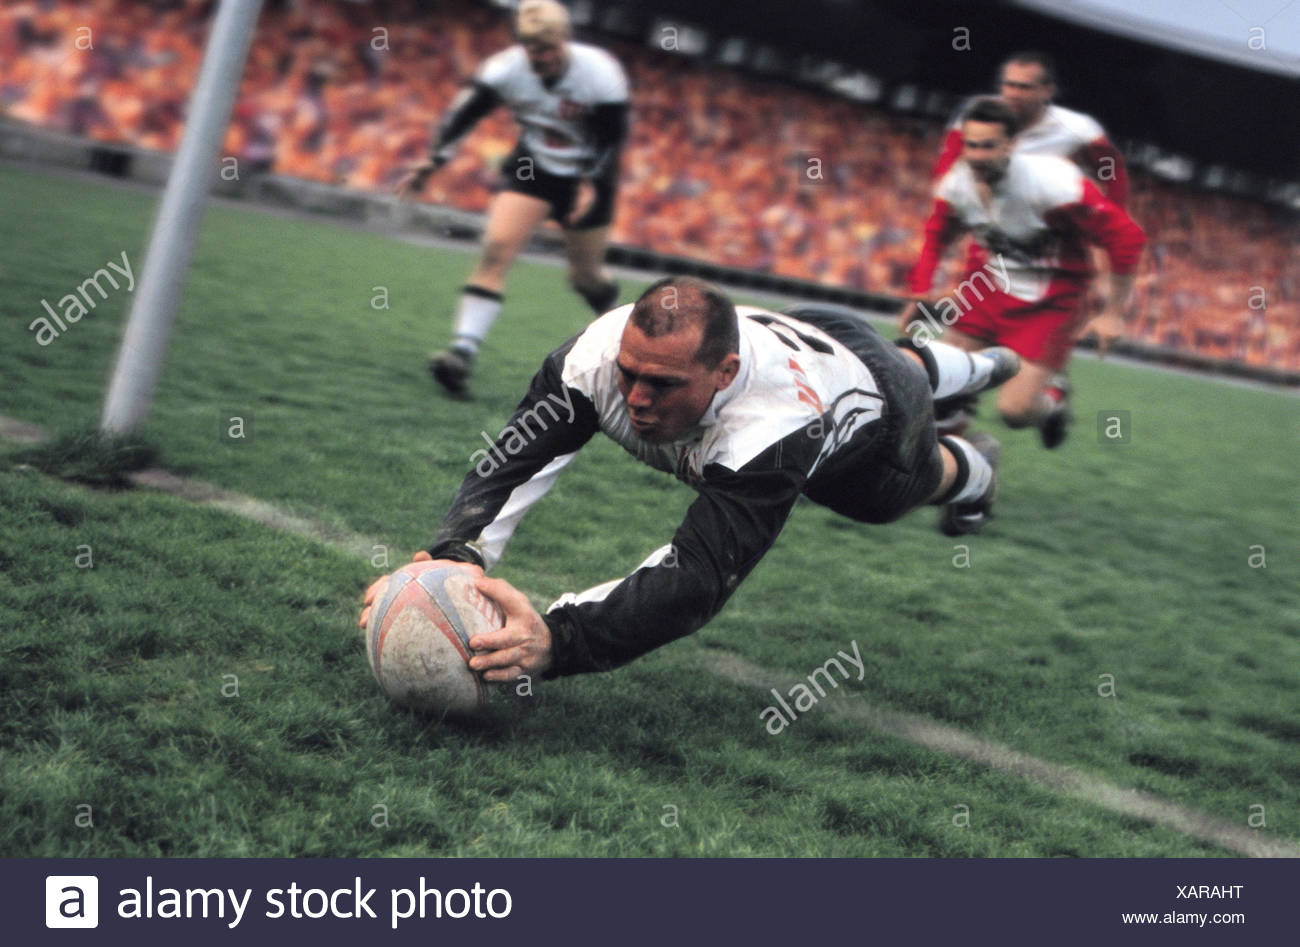 Rugby try - Stock Image